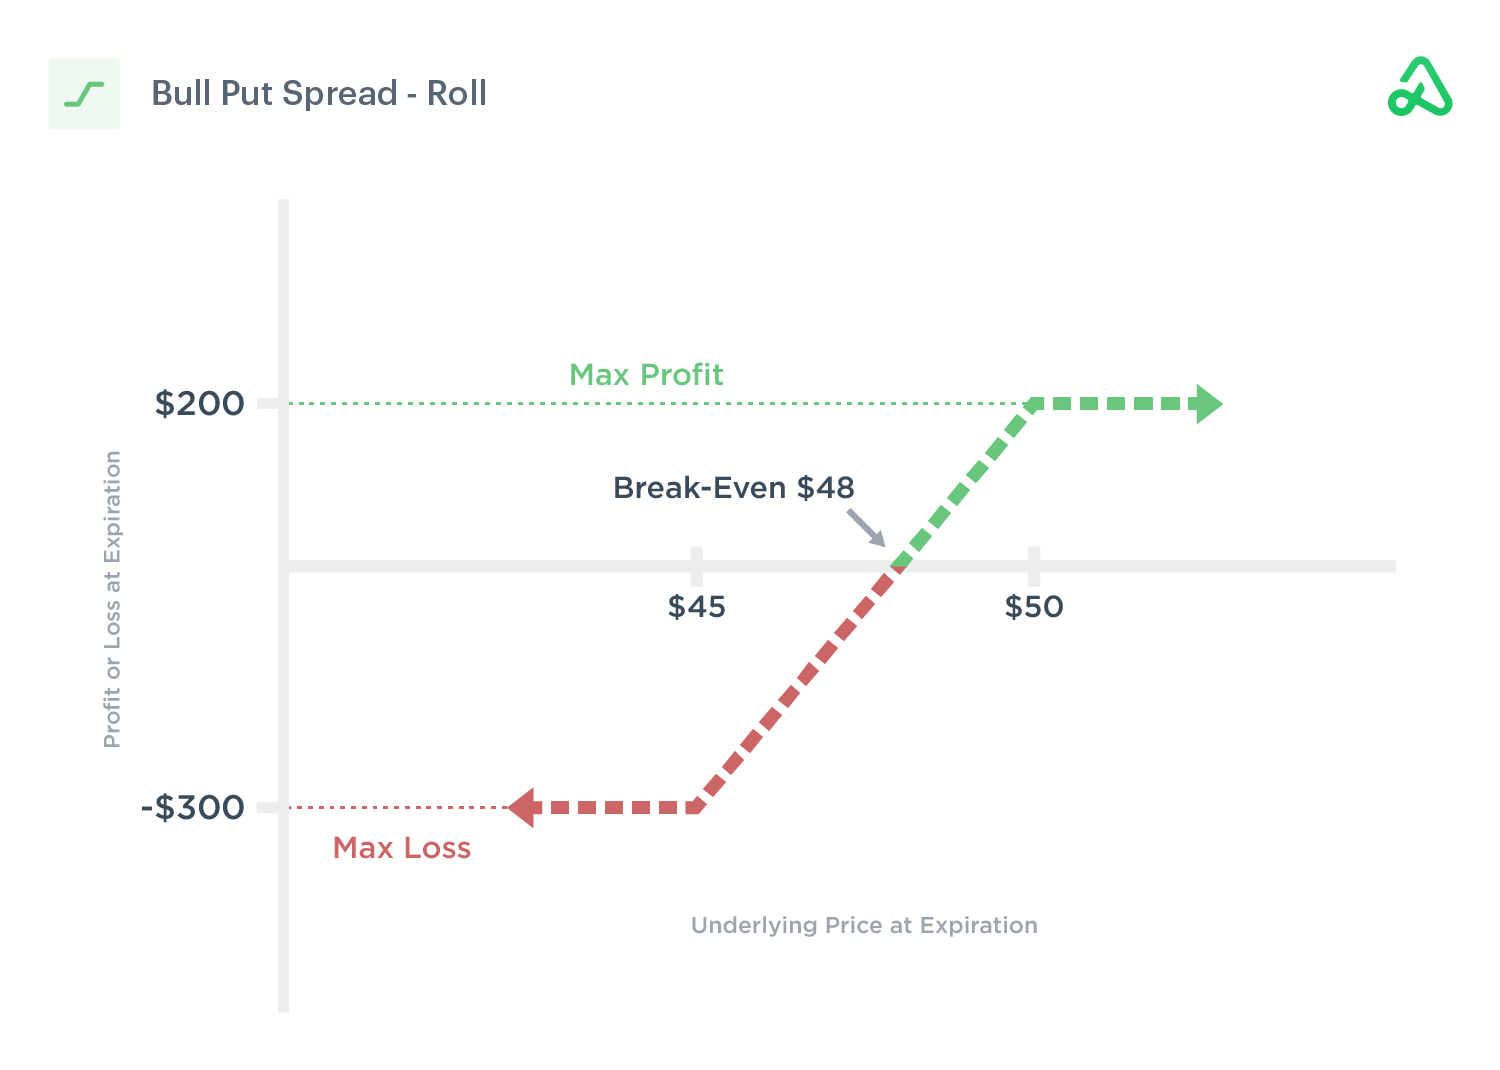 Image of a bull put spread roll out to later expiration date for credit